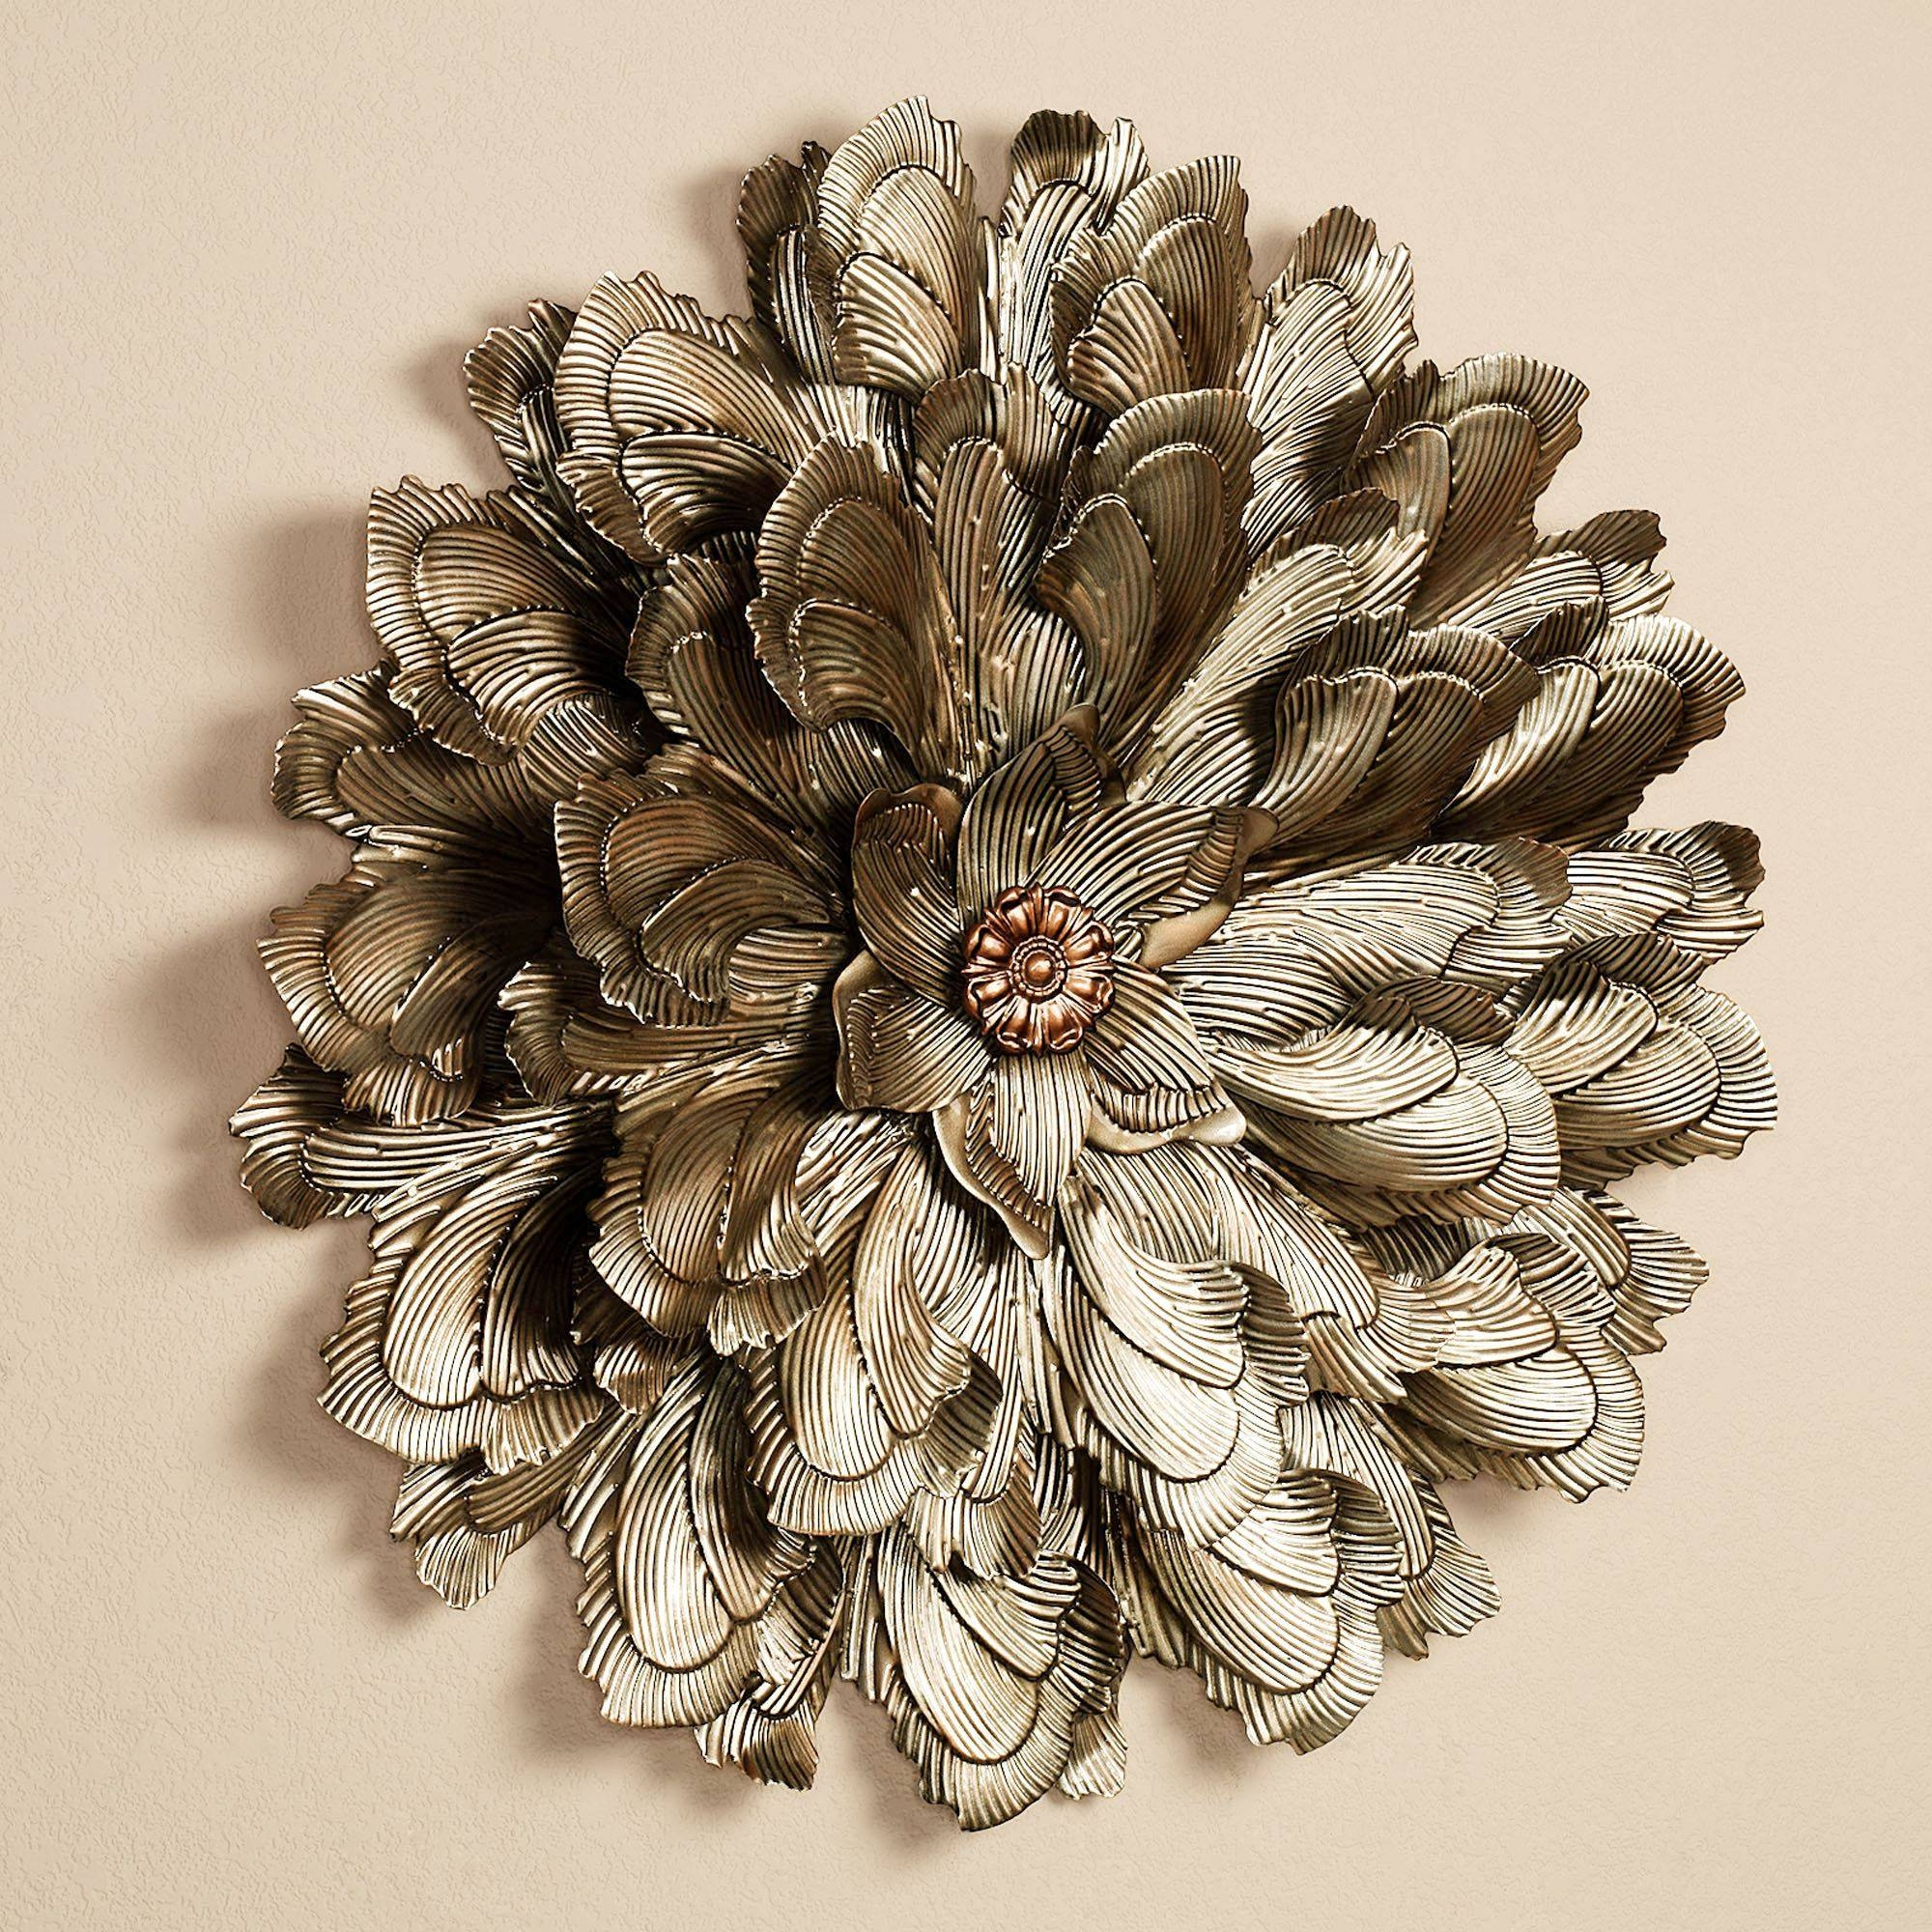 Delicate Flower Blossom Metal Wall Sculpture Intended For Most Recent Purple Flower Metal Wall Art (View 10 of 25)